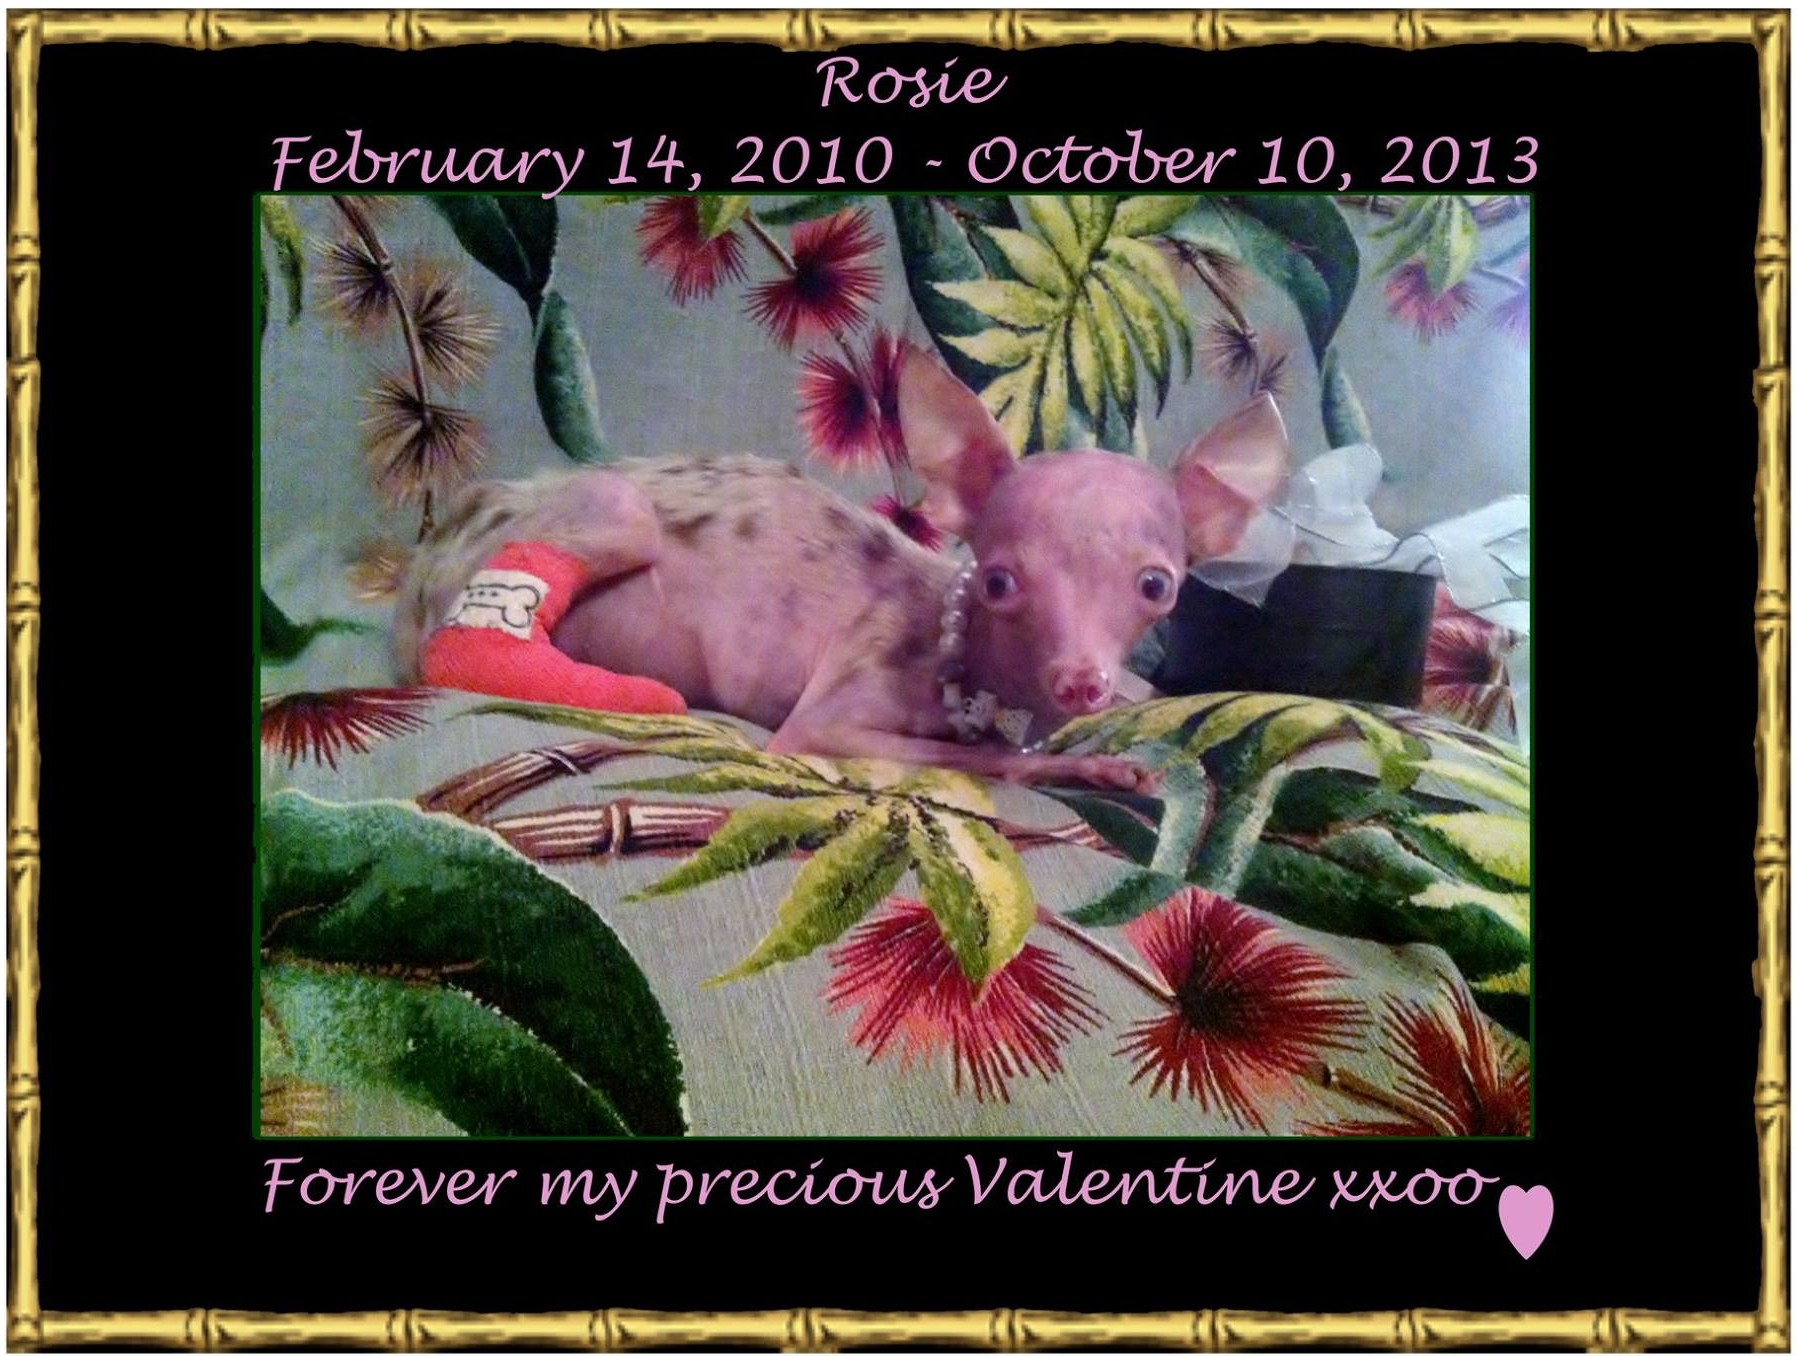 Happy Birthday Rosie - Forever my precious Valentine